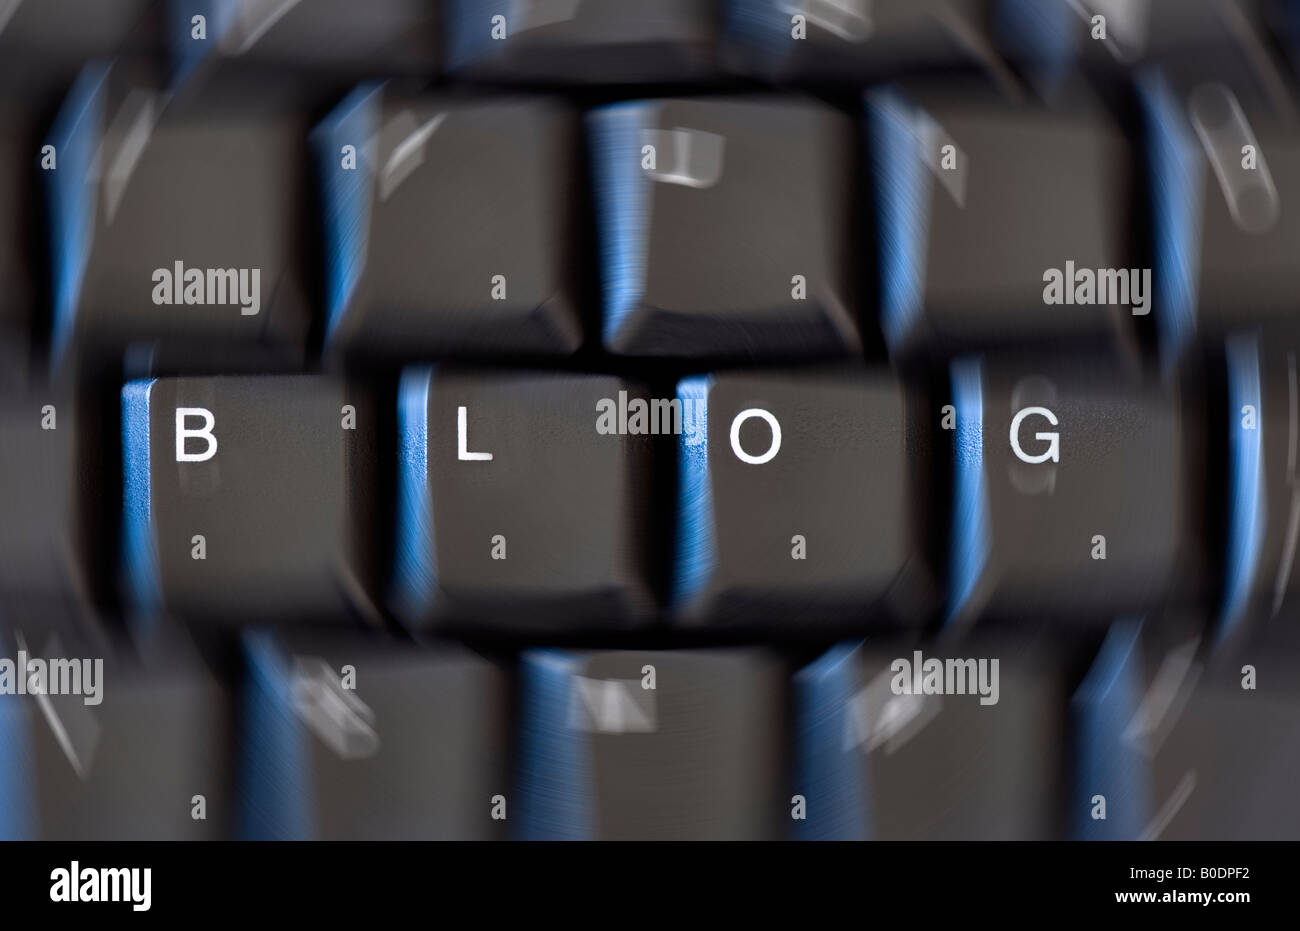 Keys on a computer keyboard spelling the word 'Blog' with a circular blur around the other keys - Stock Image